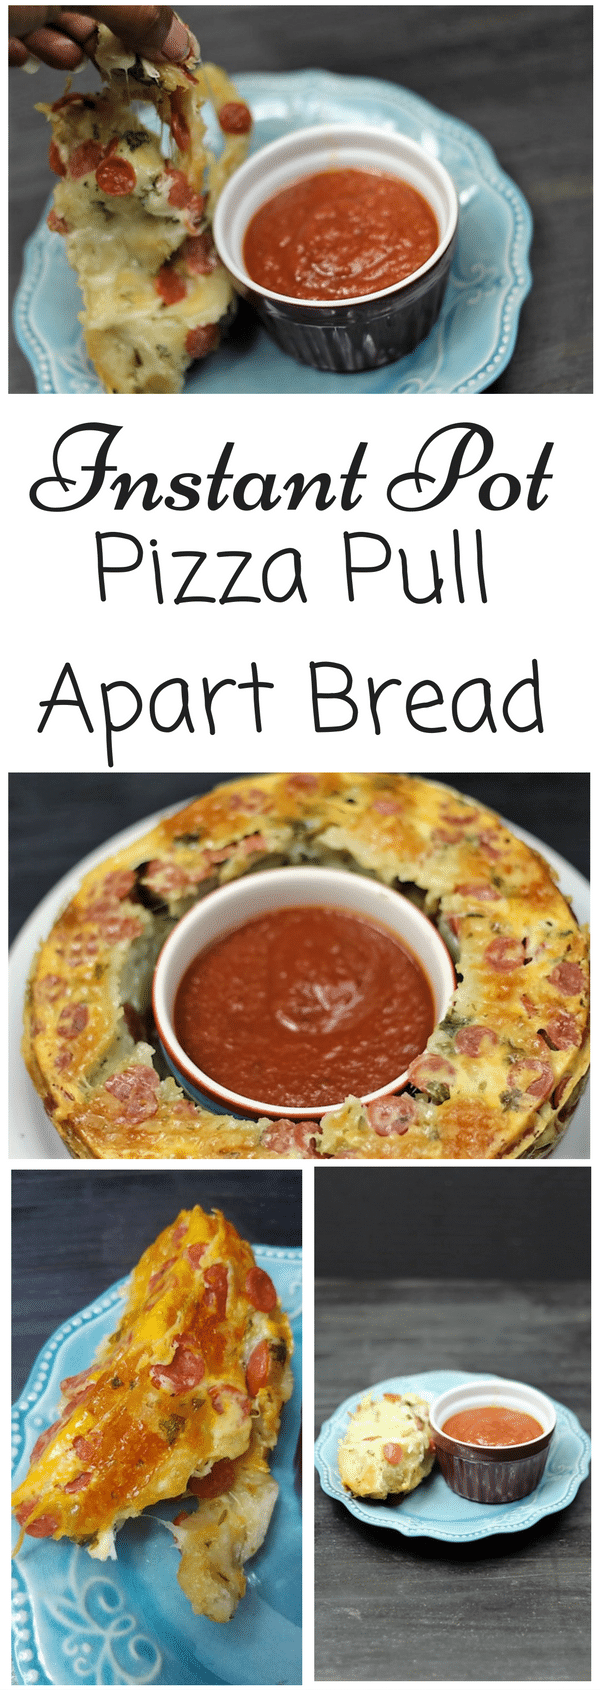 Instant Pot Pizza Pull Apart Bread ⋆ By Pink